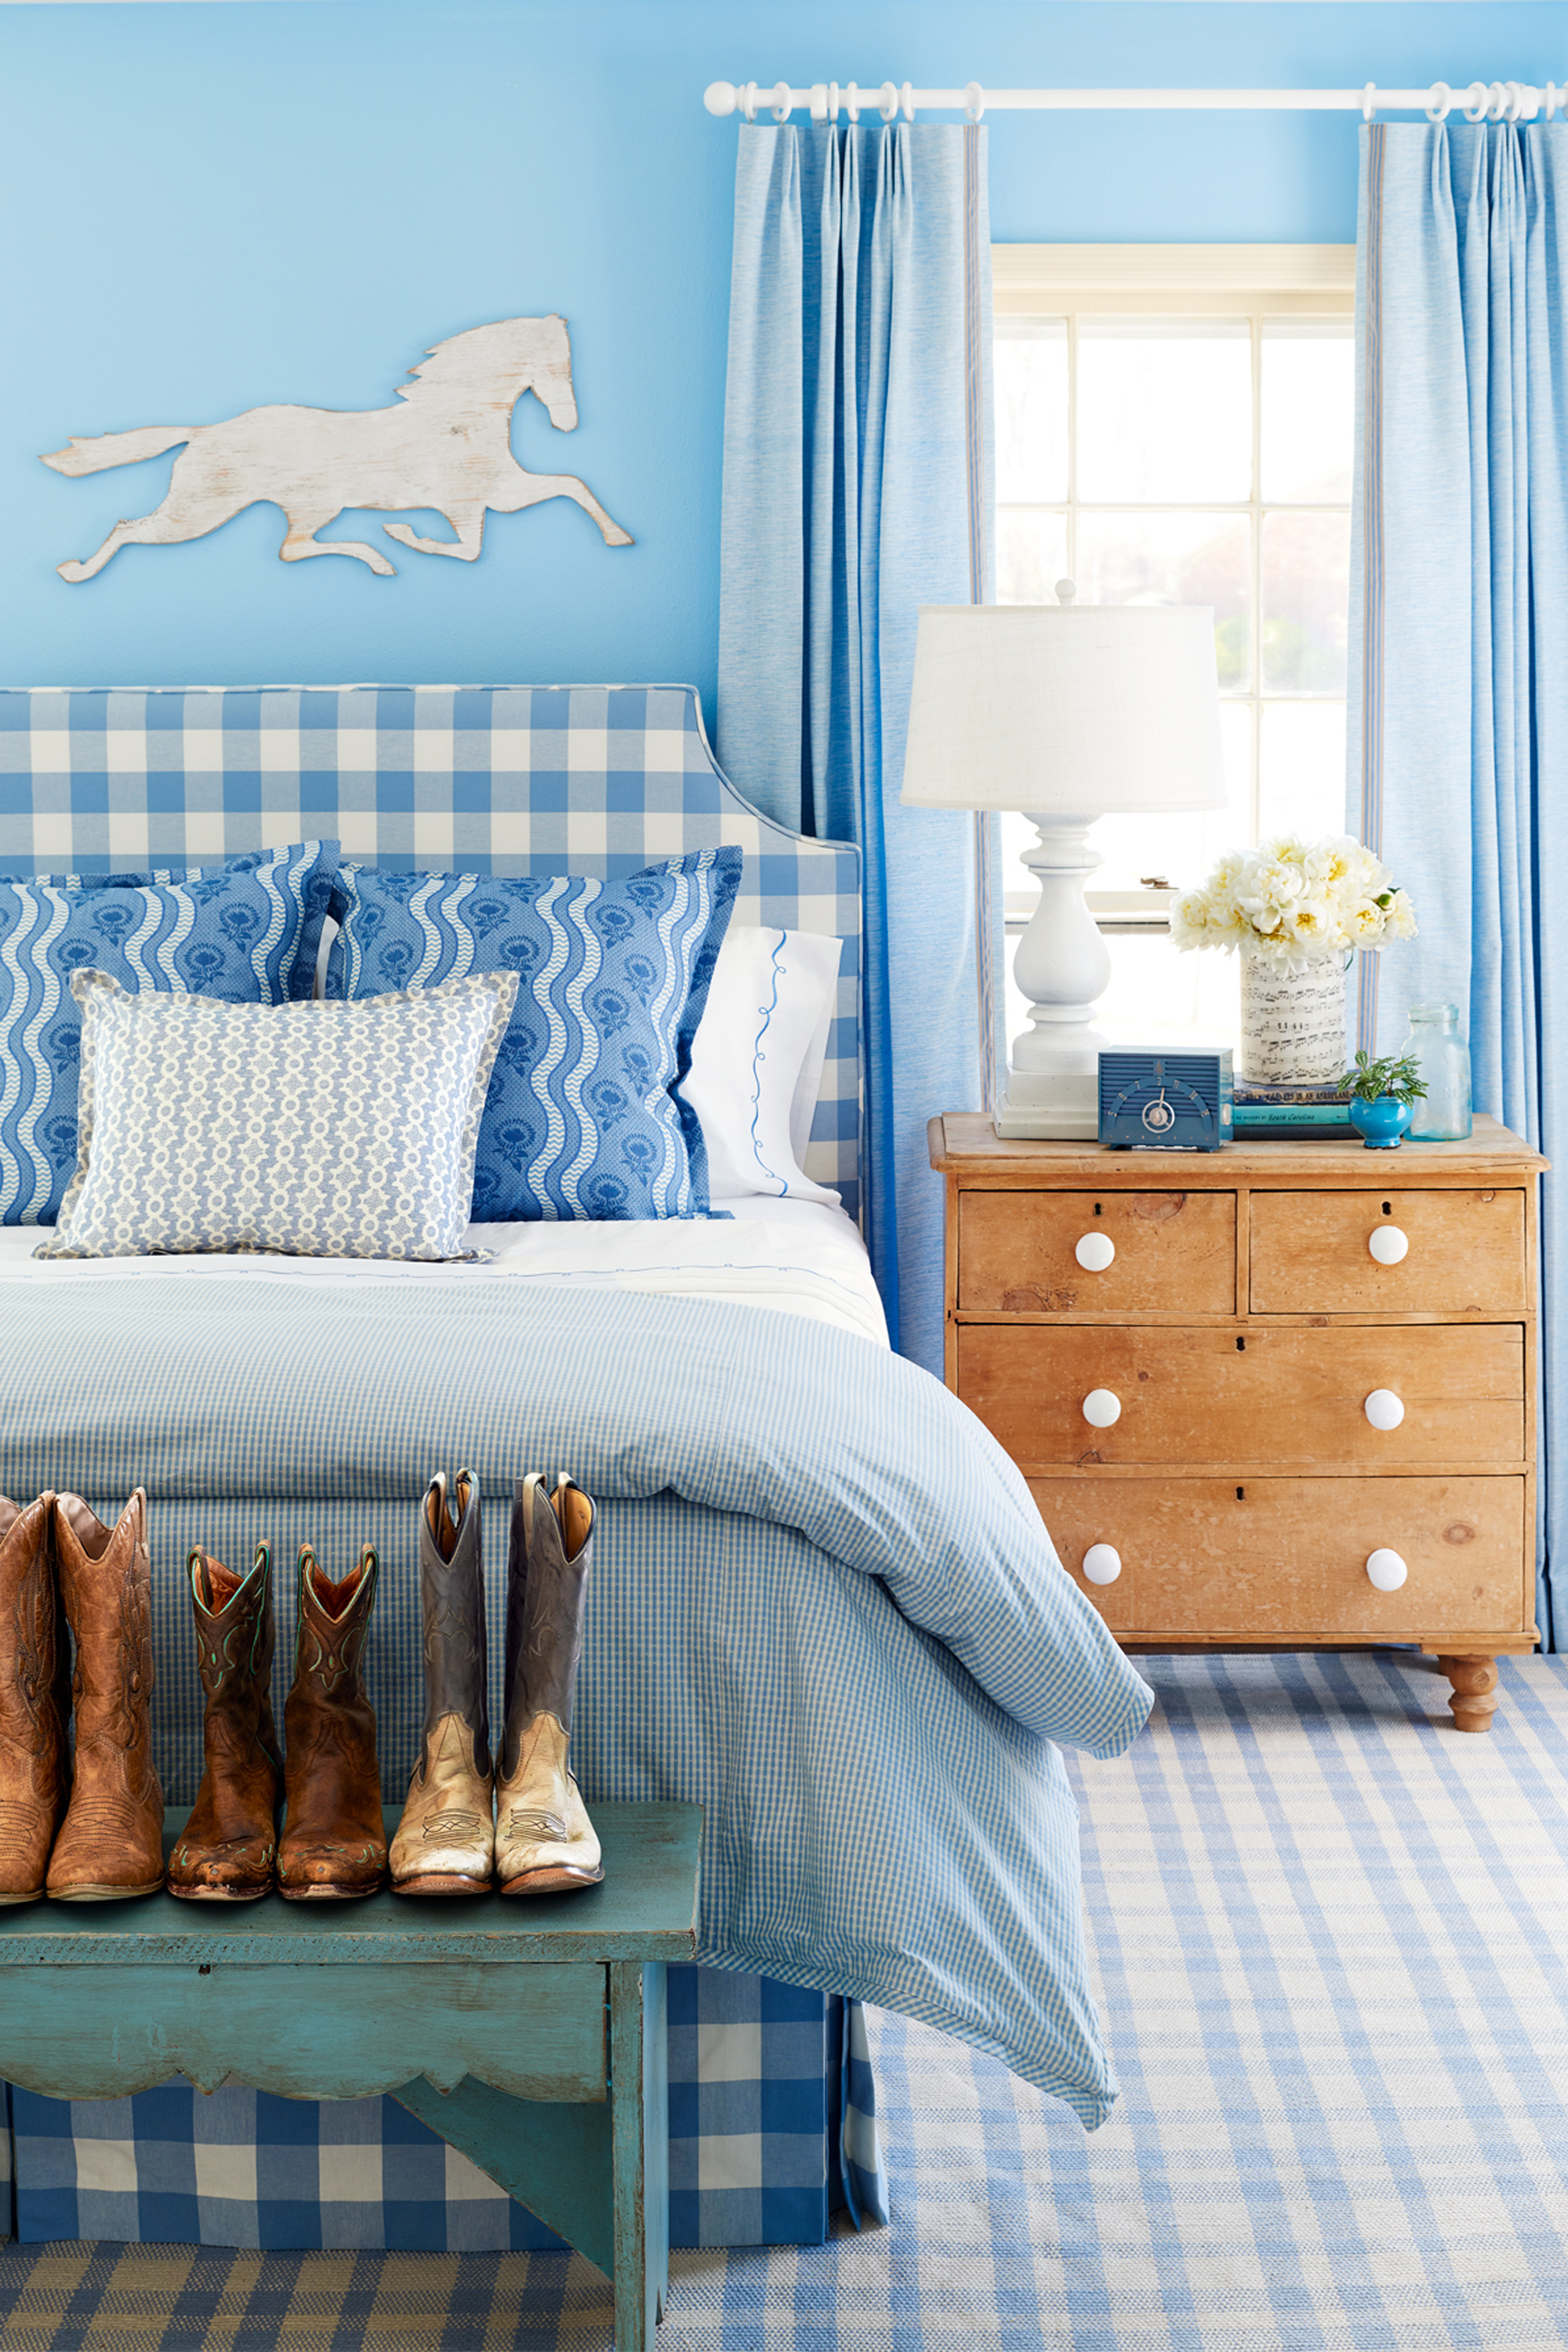 Bedroom design ideas for women blue - Bedroom Design Ideas For Women Blue 4